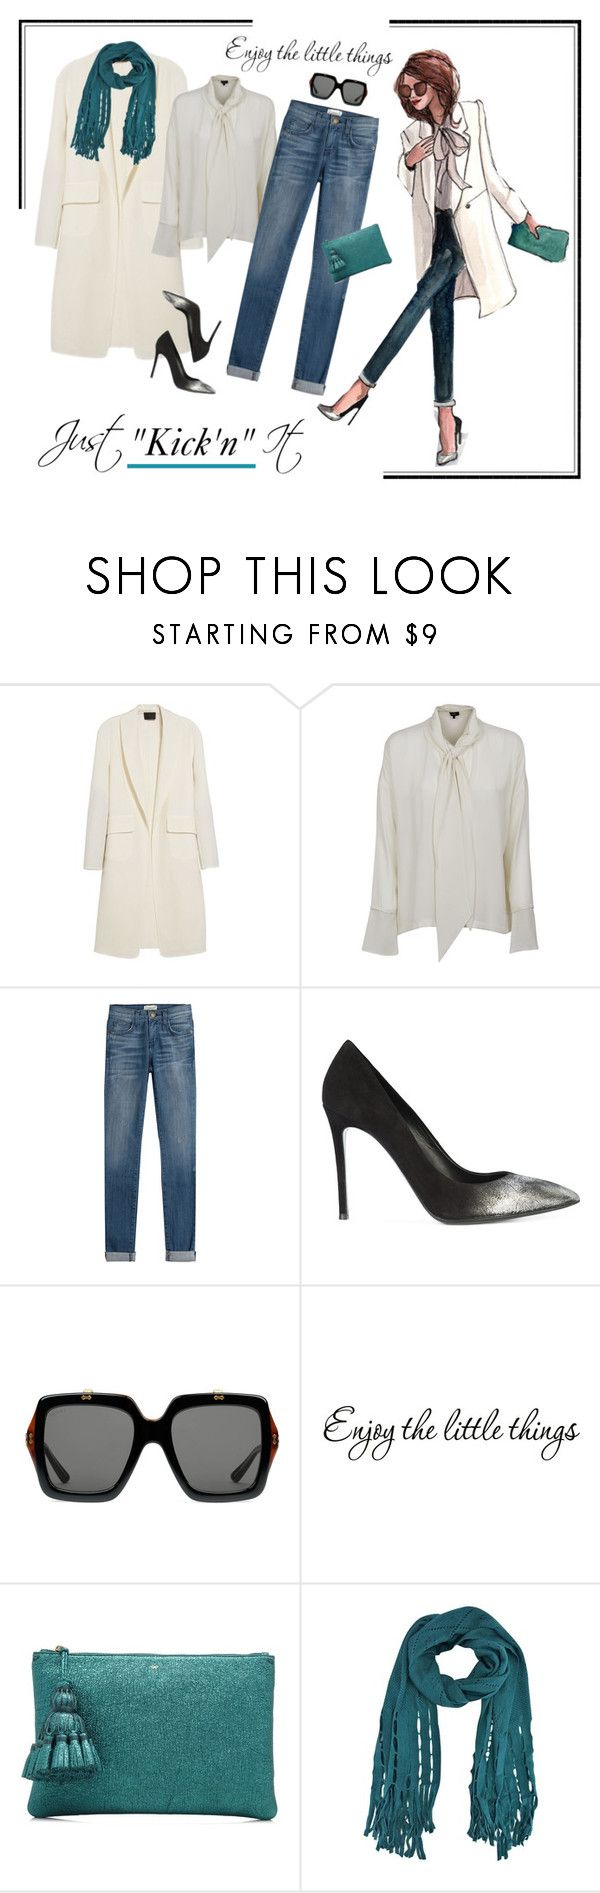 """""""Just kick' it"""" by outfitsloveyou ❤ liked on Polyvore featuring Alexander Wang, Theory, Current/Elliott, Thomas Wylde, Gucci and Anya Hindmarch"""